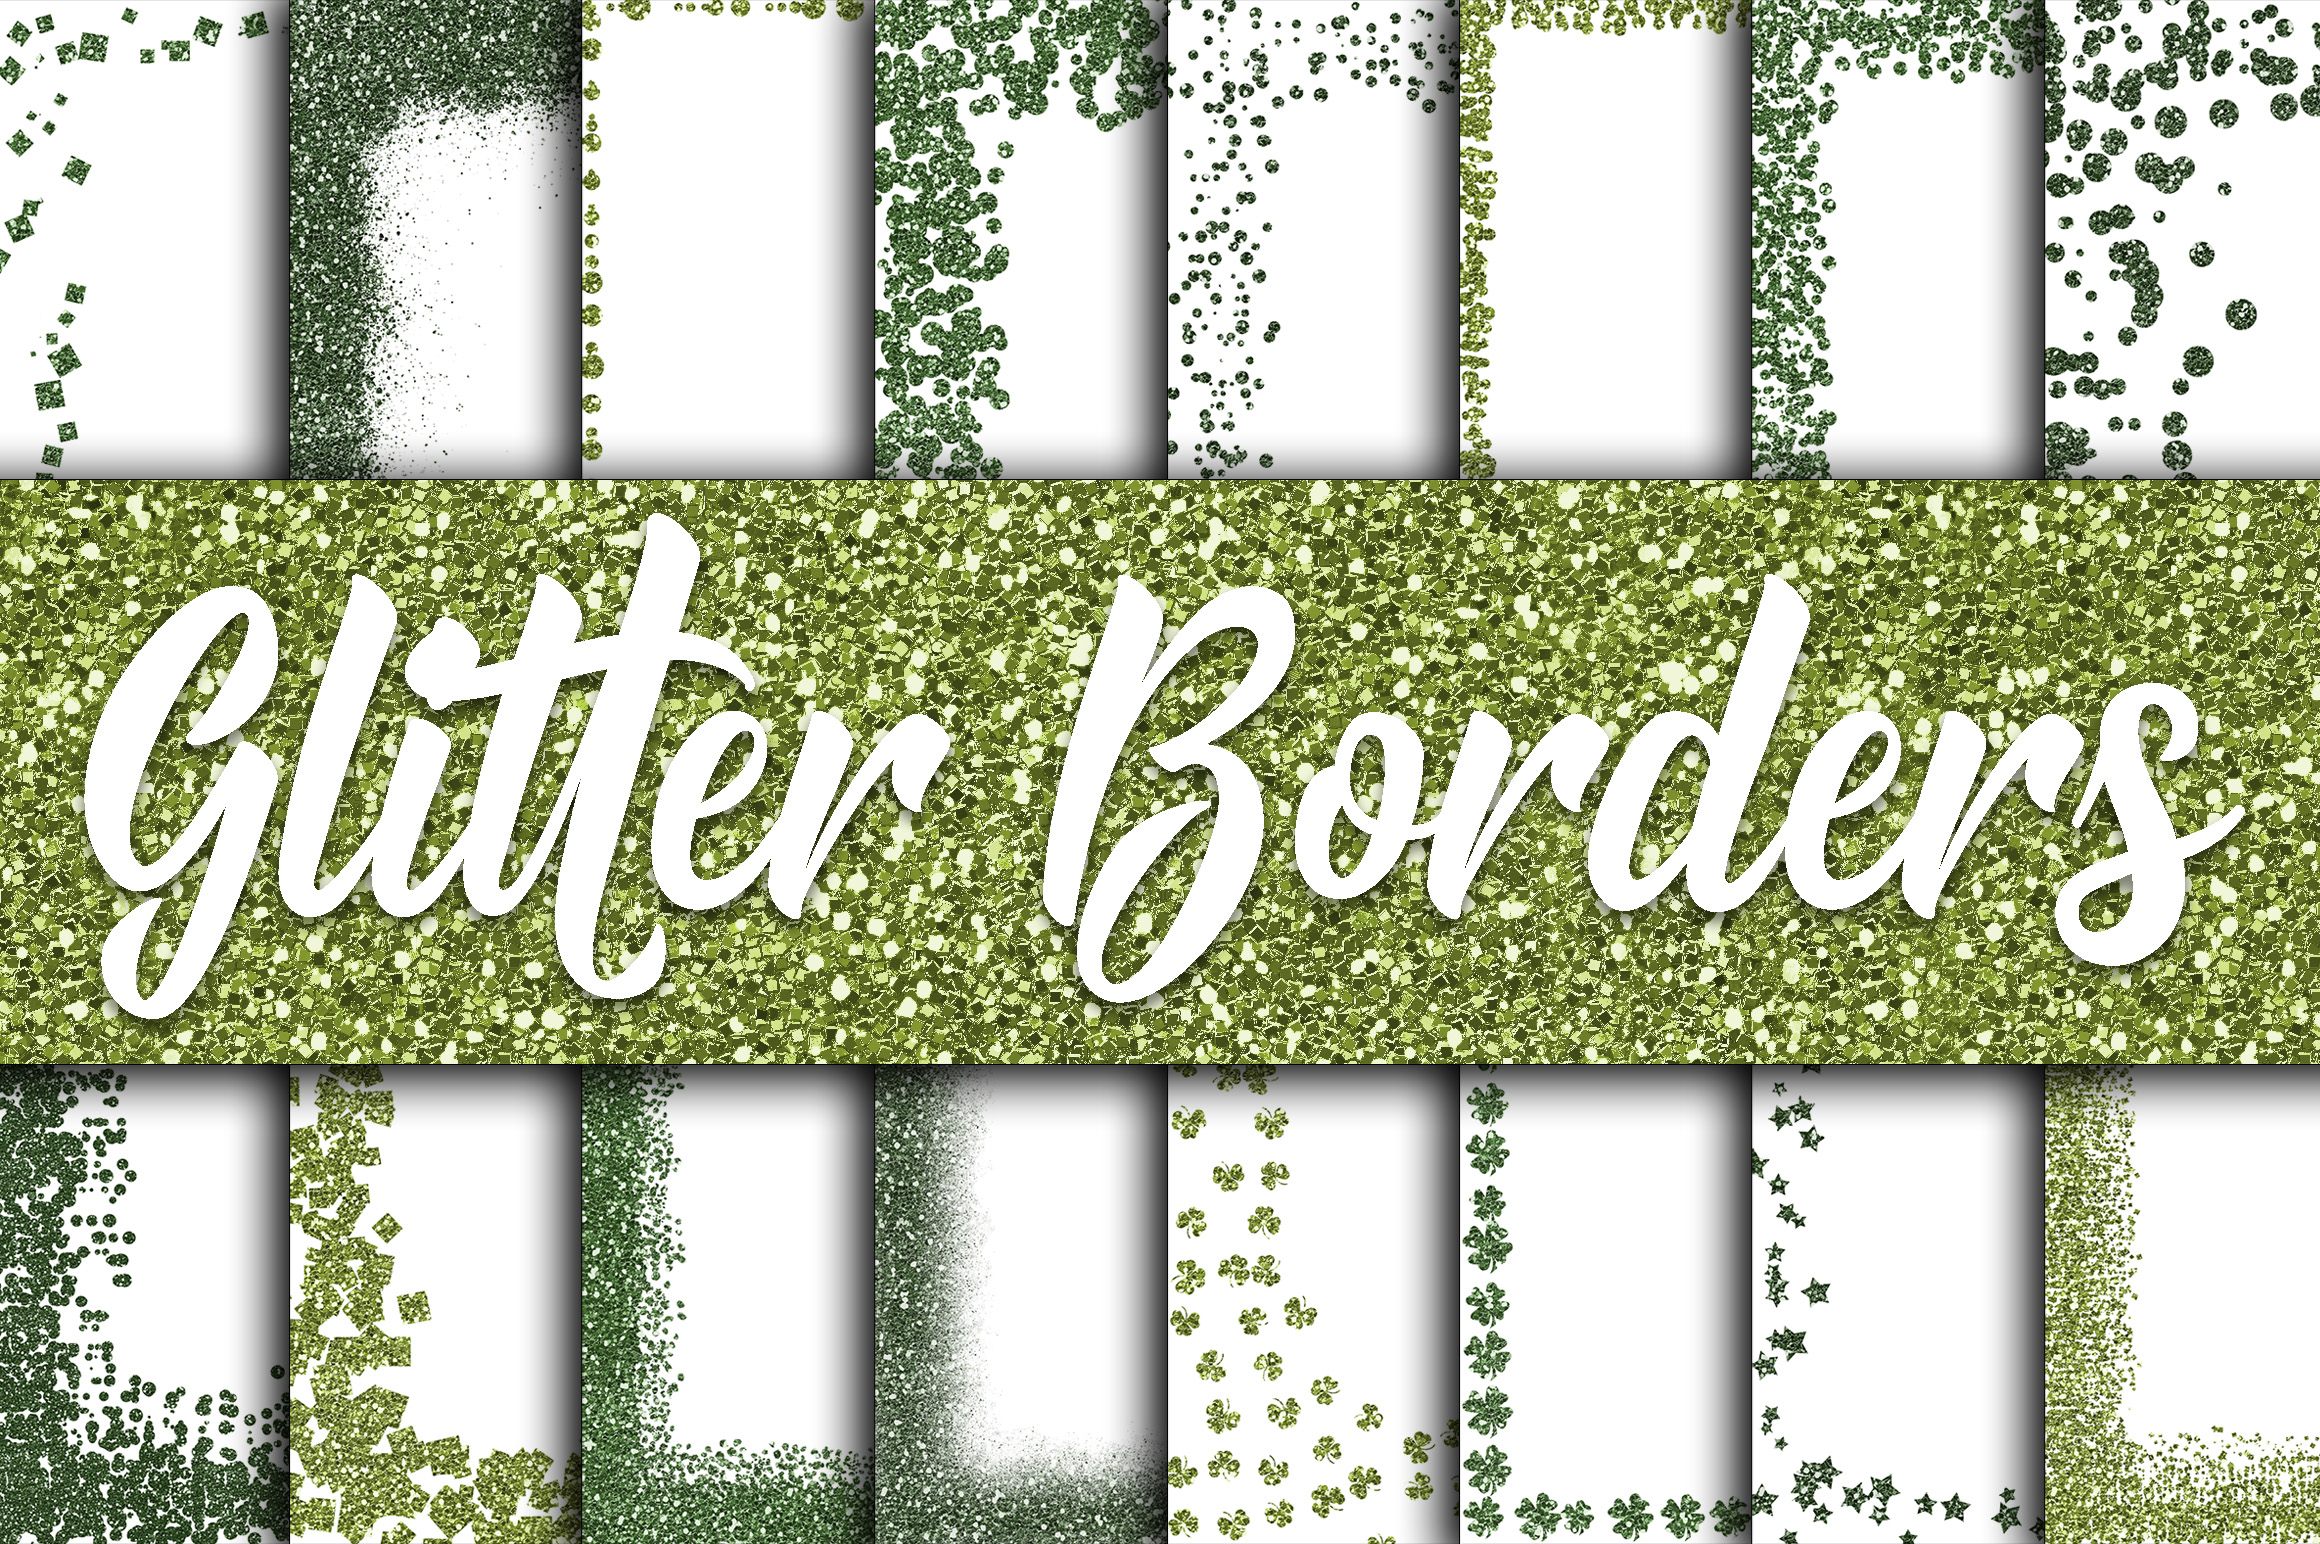 St Patricks Day Glitter Borders Digital Paper Graphic Backgrounds By oldmarketdesigns